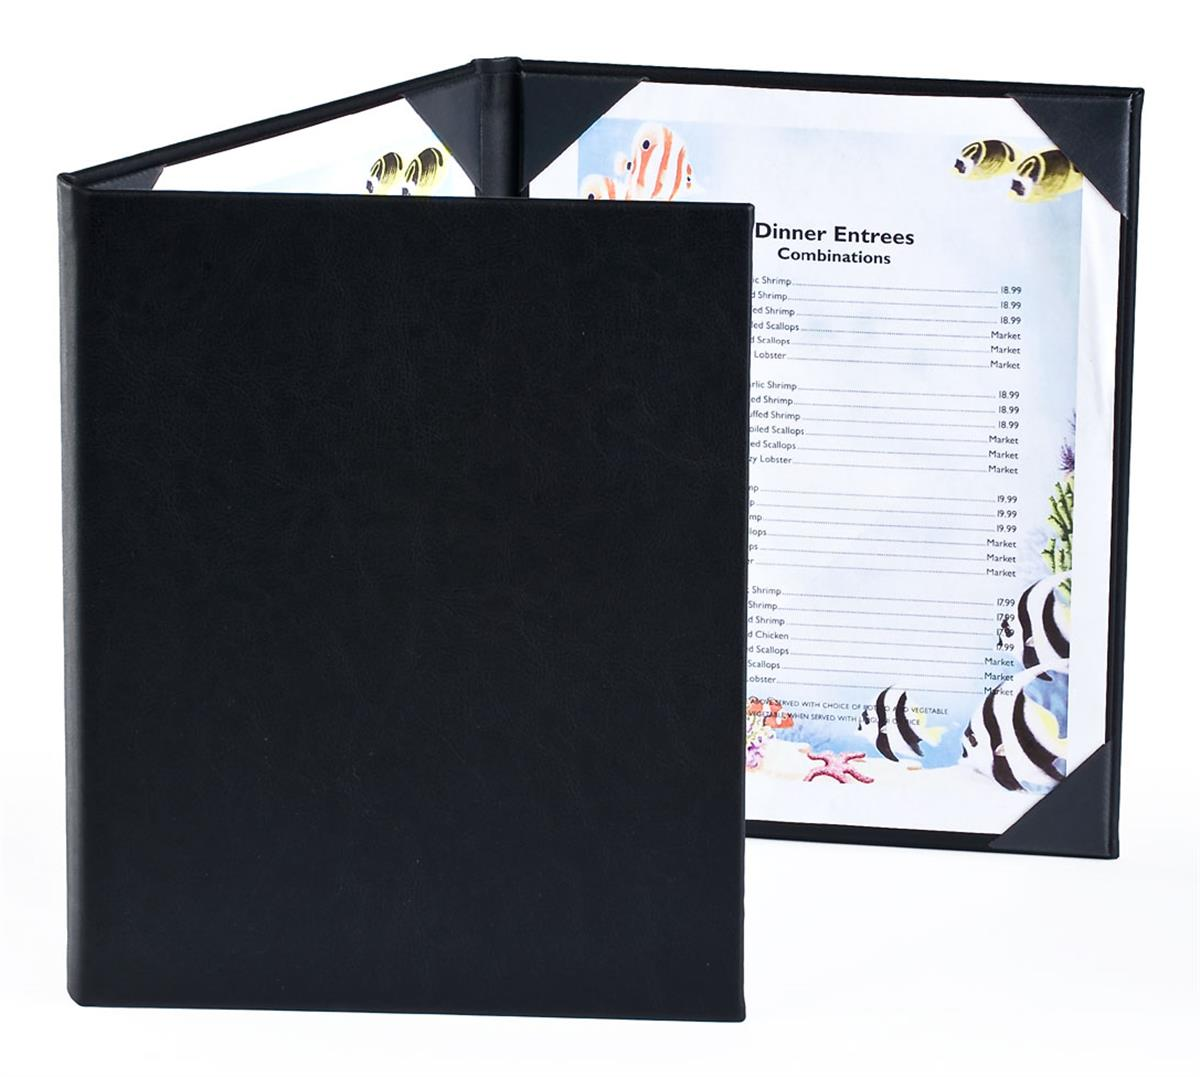 8.25 x 11 /& 4.25 X 11 DOUBLE-STITCH Leatherette Edge-Gold corners 8-VIEW ONE-HALF 25 BETTER QUALITY Menu Covers #P130T BURGUNDY TRIPLE PANEL FOLDOUT SEE MORE: Type MenuCoverMan in  search